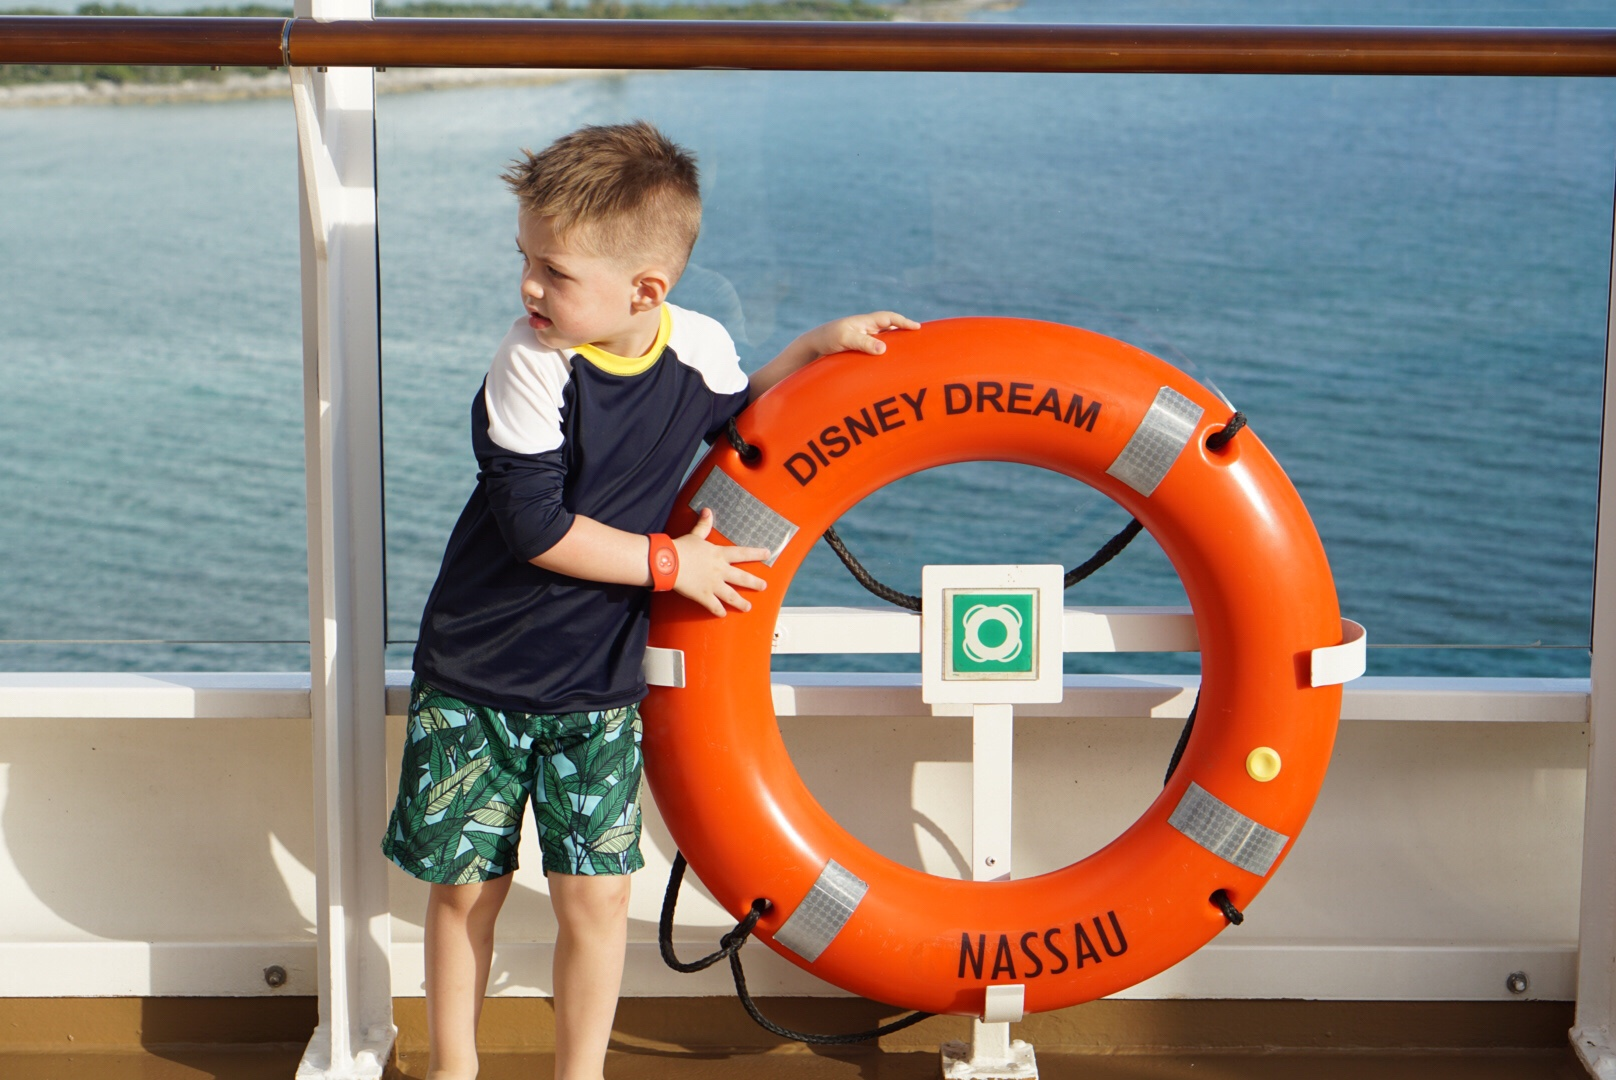 Disney Dream Cruise Ship - DisneySMMC Disney Social Media Moms Celebration 2018 via Misty Nelson #disneysmmc #disneymoms